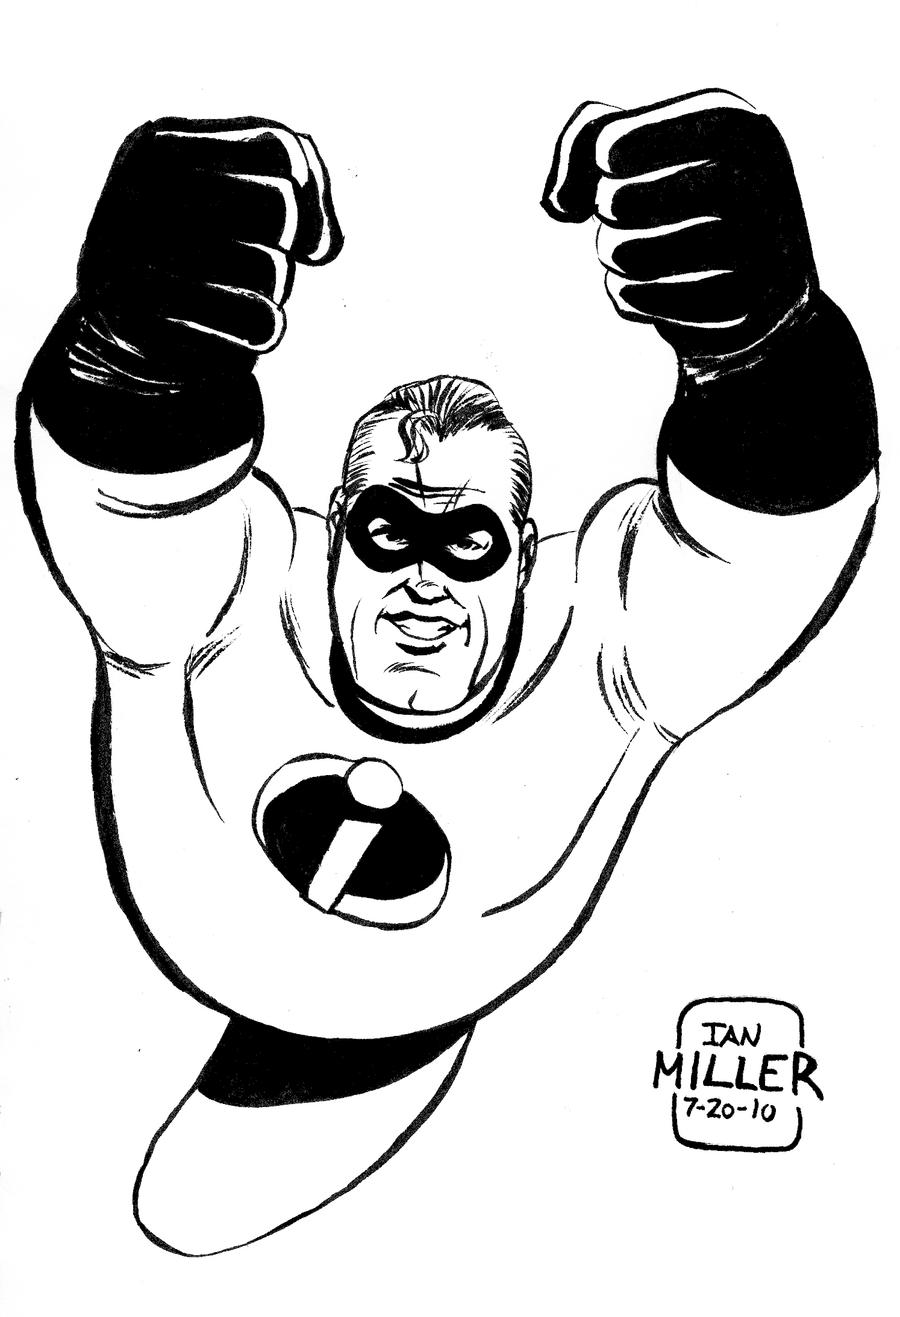 Mr. Incredible Daily Sketch by IanJMiller on DeviantArt